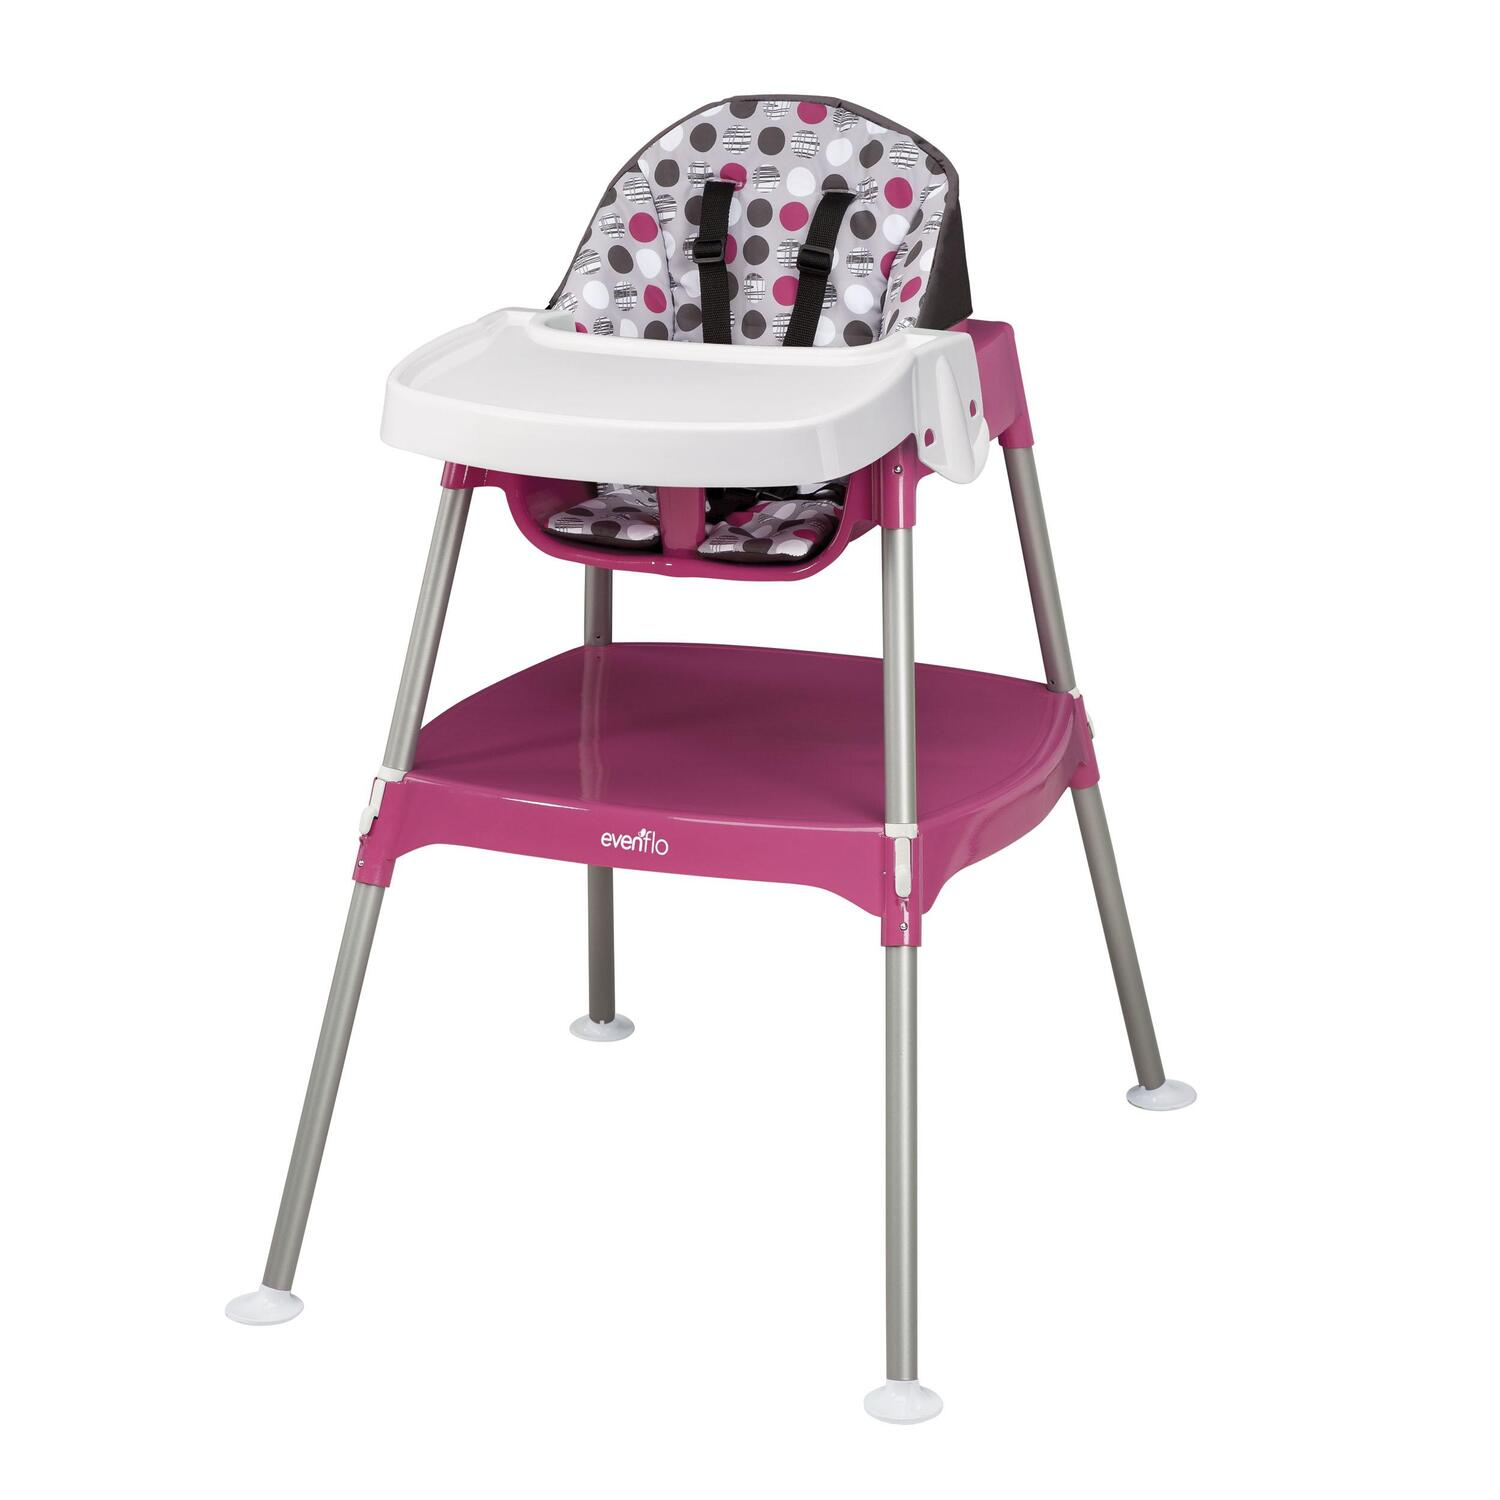 Evenflo Convertible 3in1 High Chair by OJ Commerce 5399